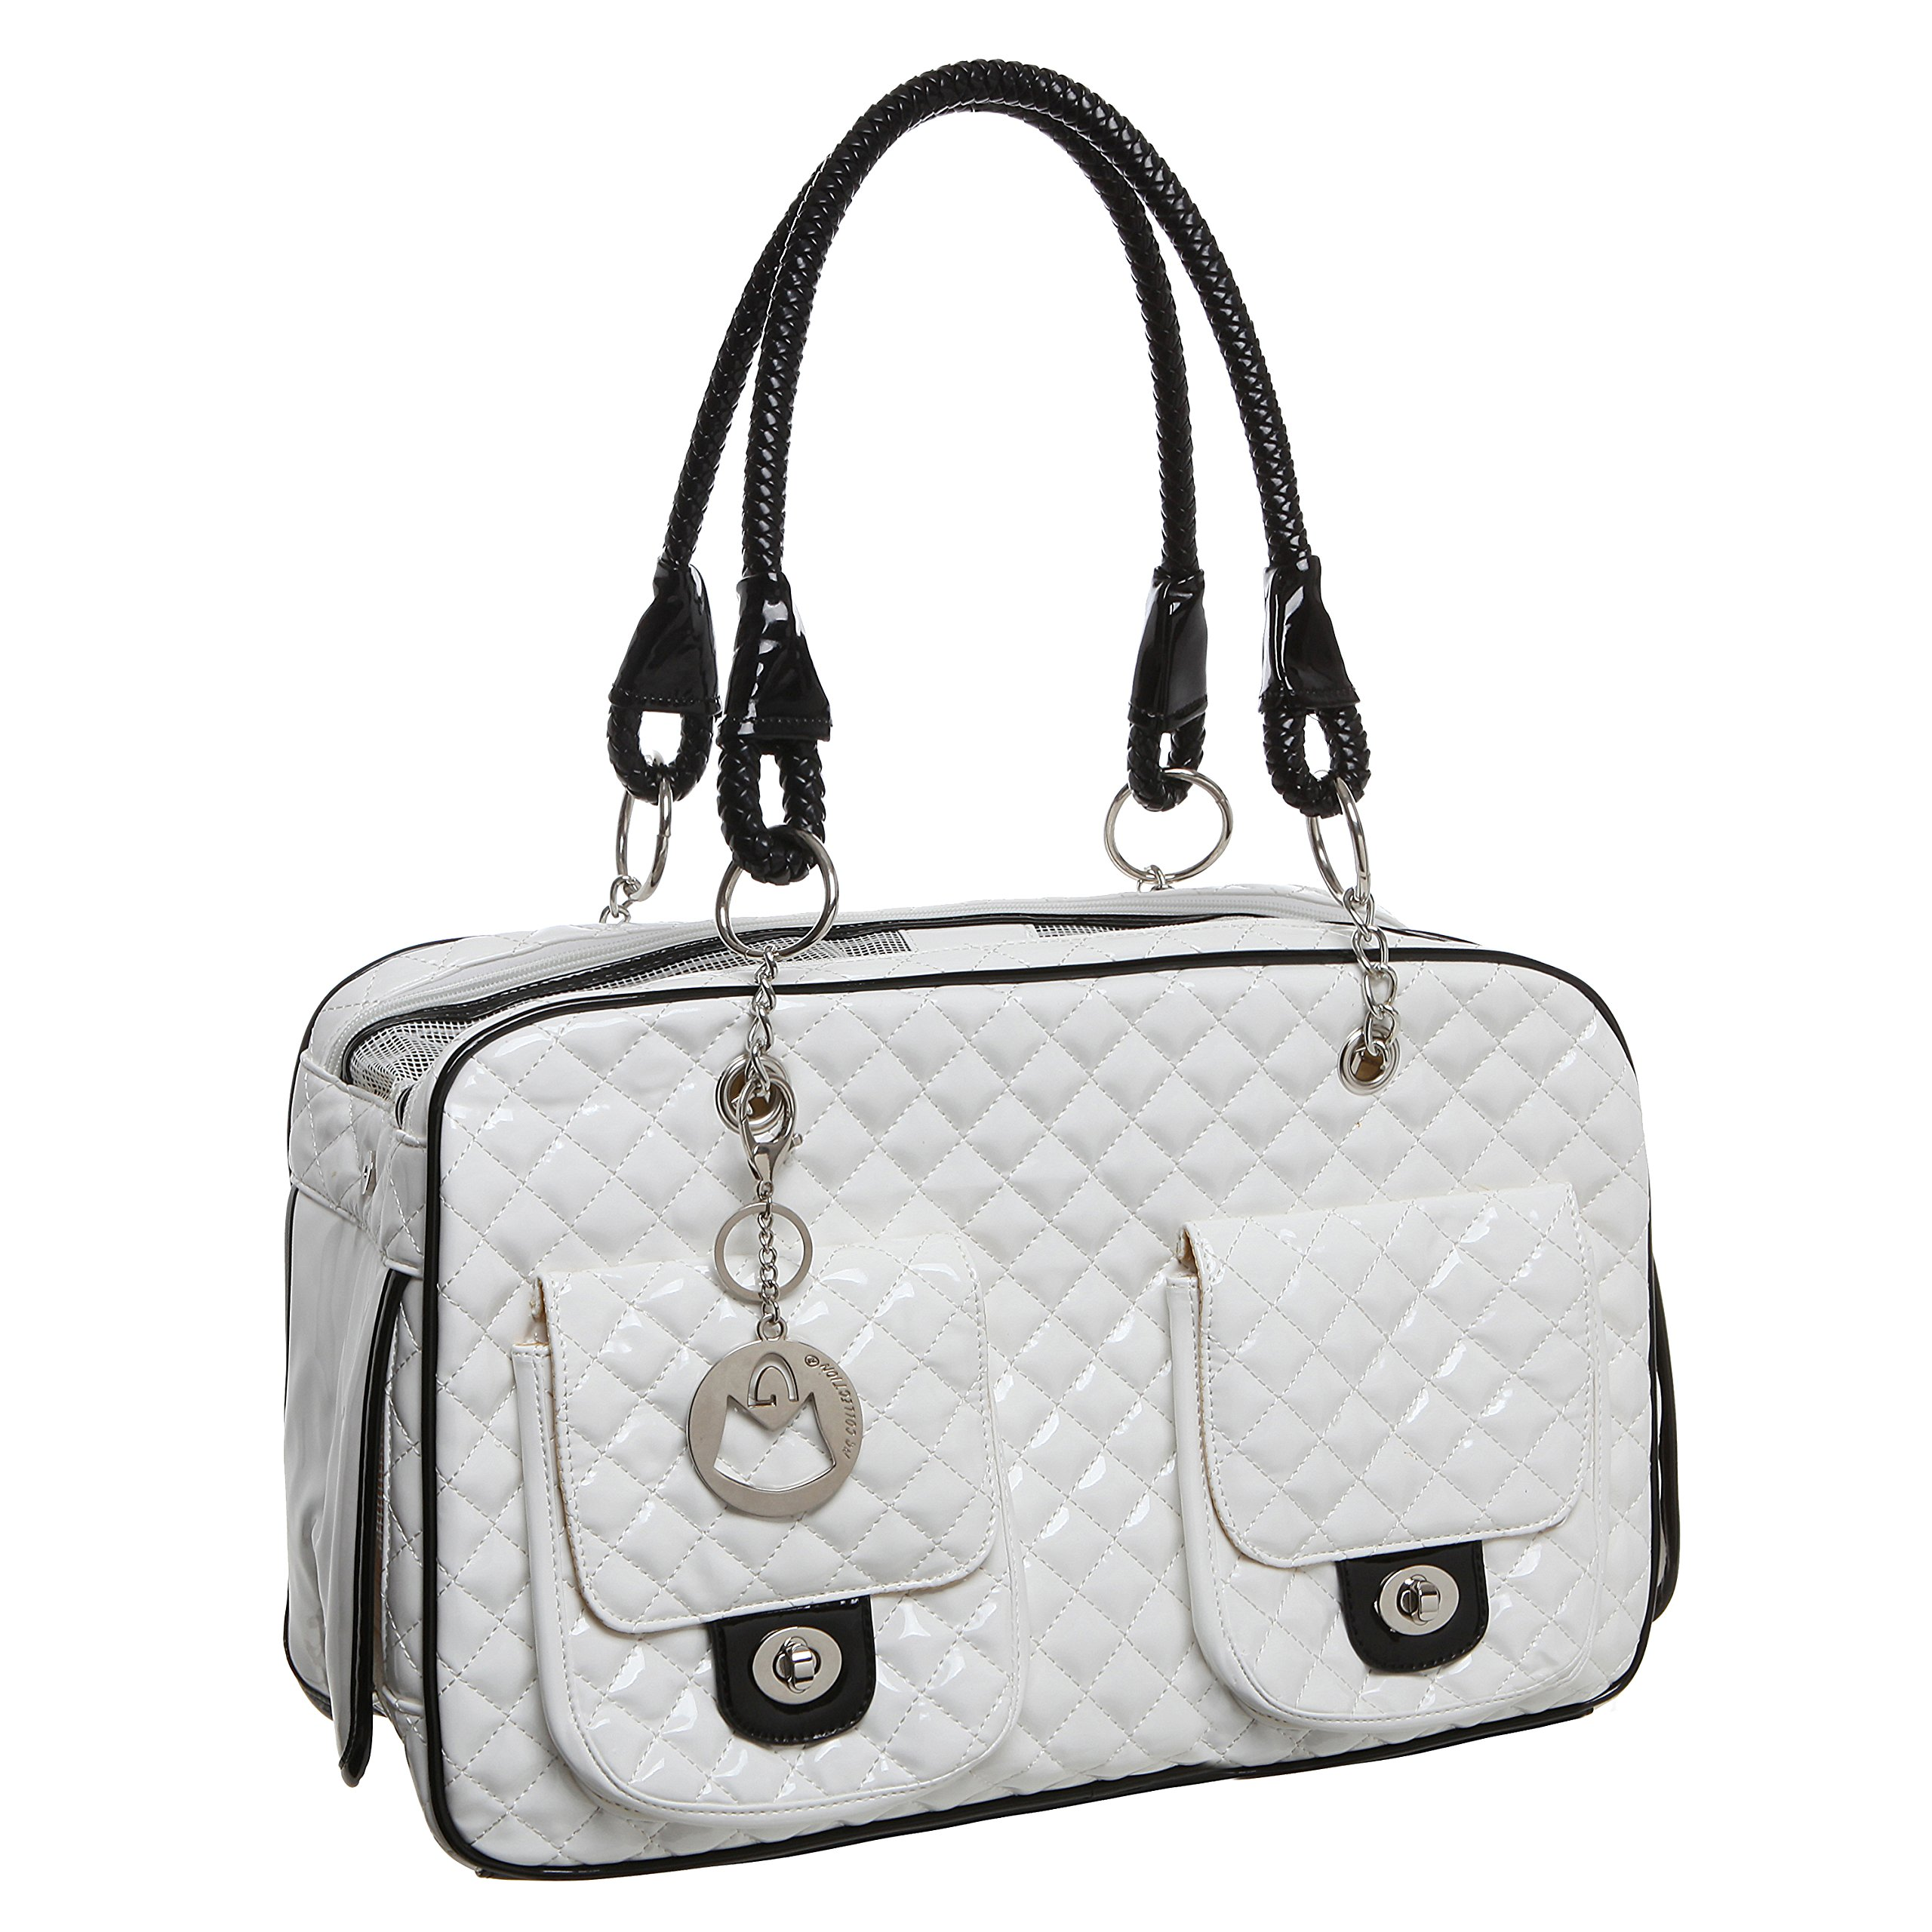 MyGift MG Collection White Quilted Designer Inspired Faux Patent Leather Dog & Cat Pet Carrier Tote Handbag